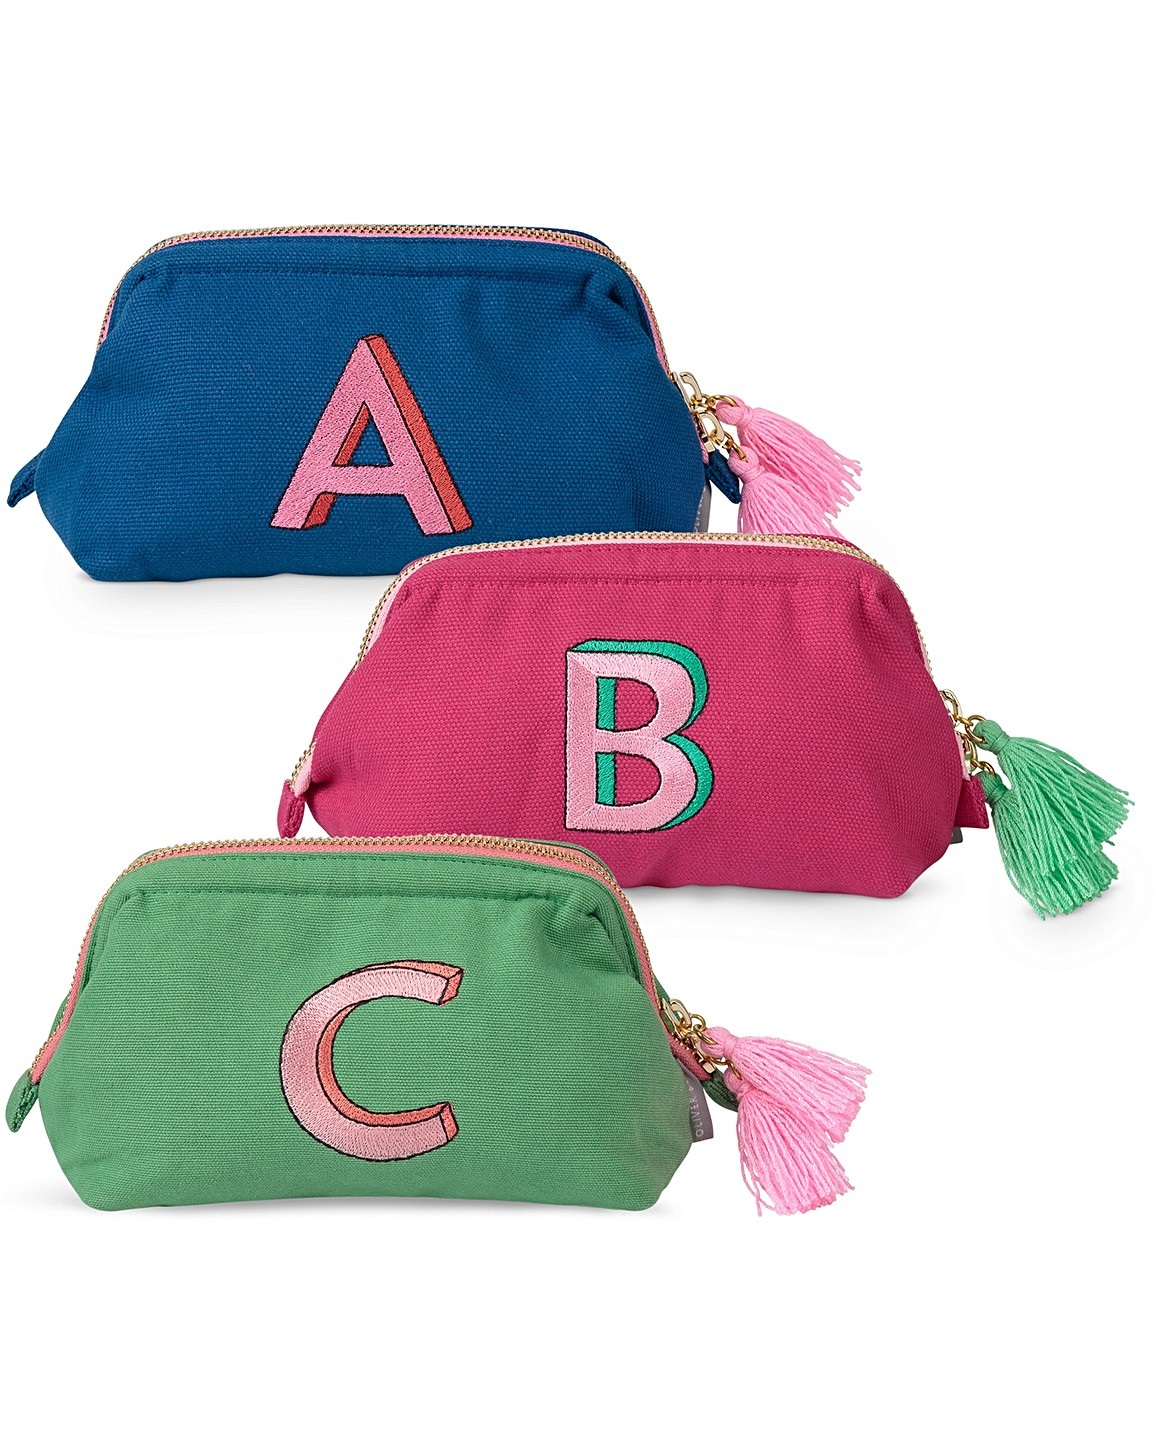 eea11eac0d3b Alphabet Embroidered Makeup Bag